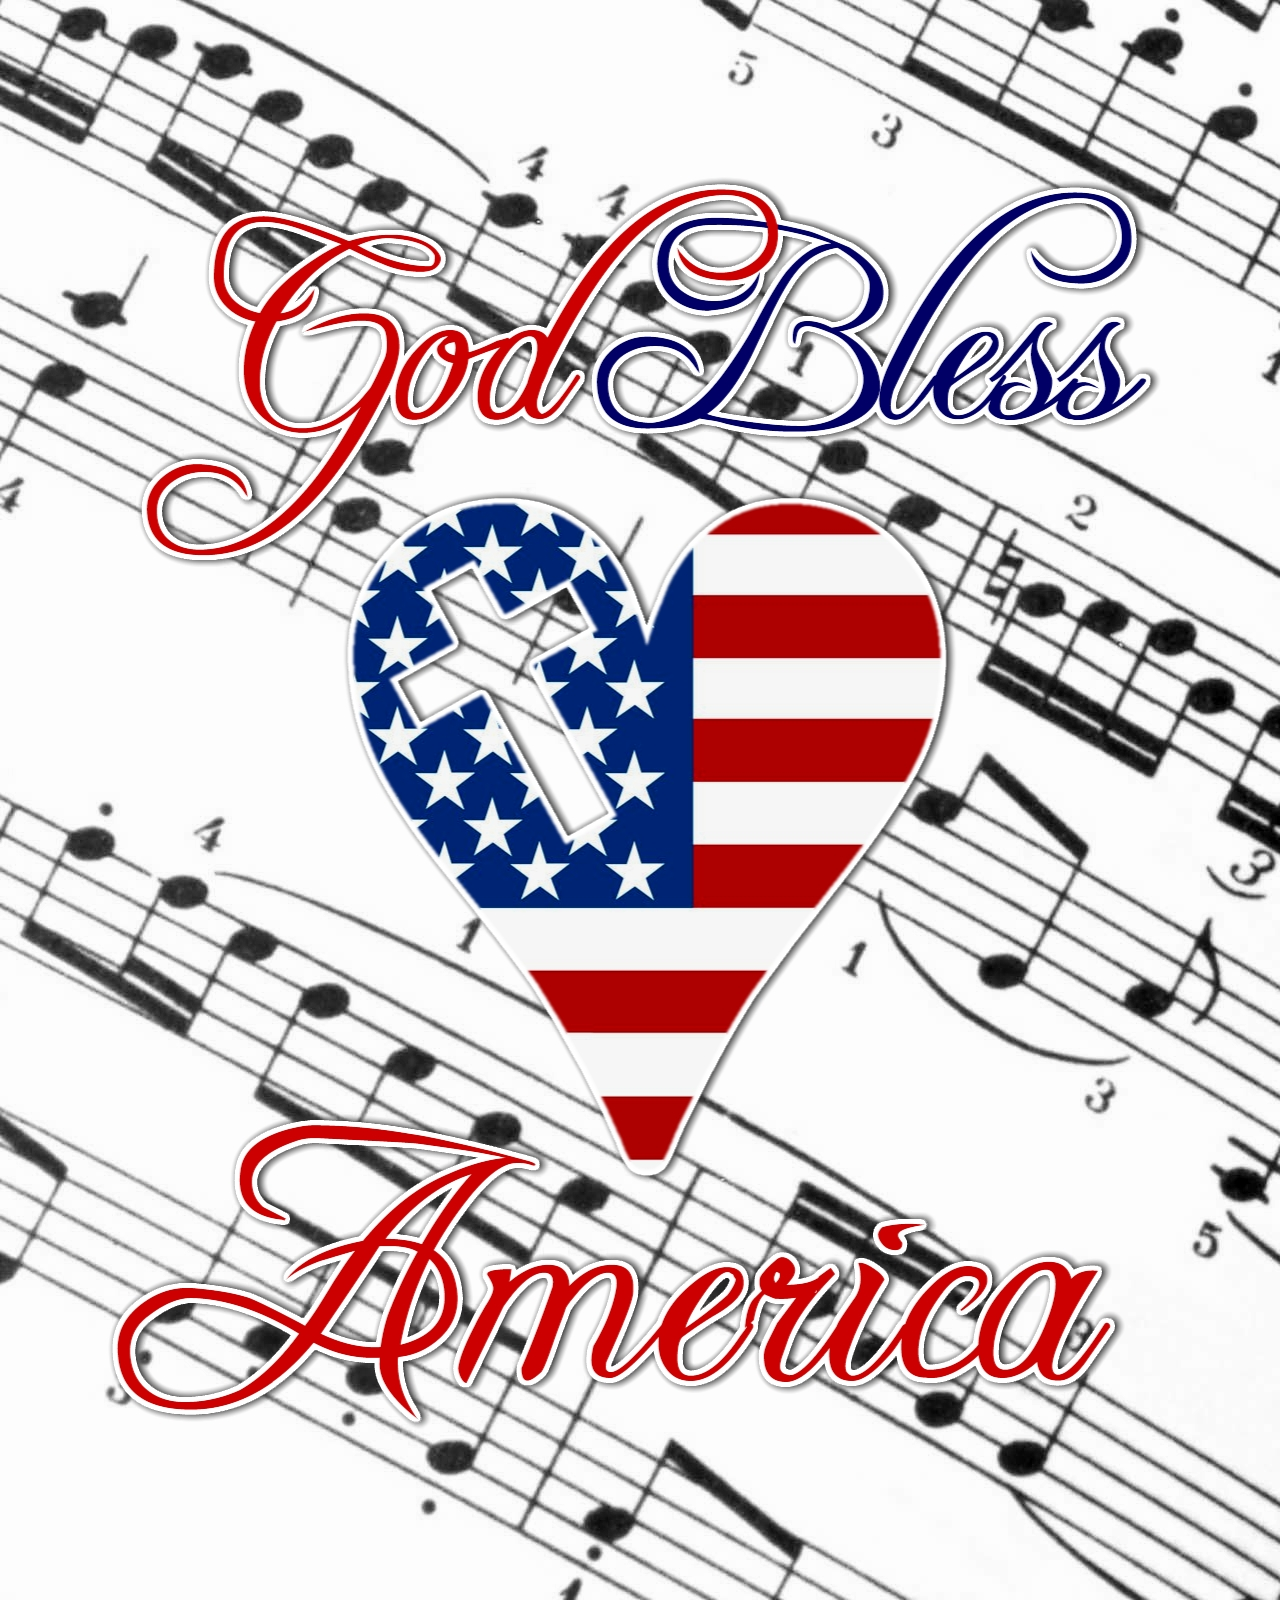 photograph regarding Free Printable God Bless America Sheet Music referred to as Agape Delight in Strategies: God Bless The usa No cost Printable